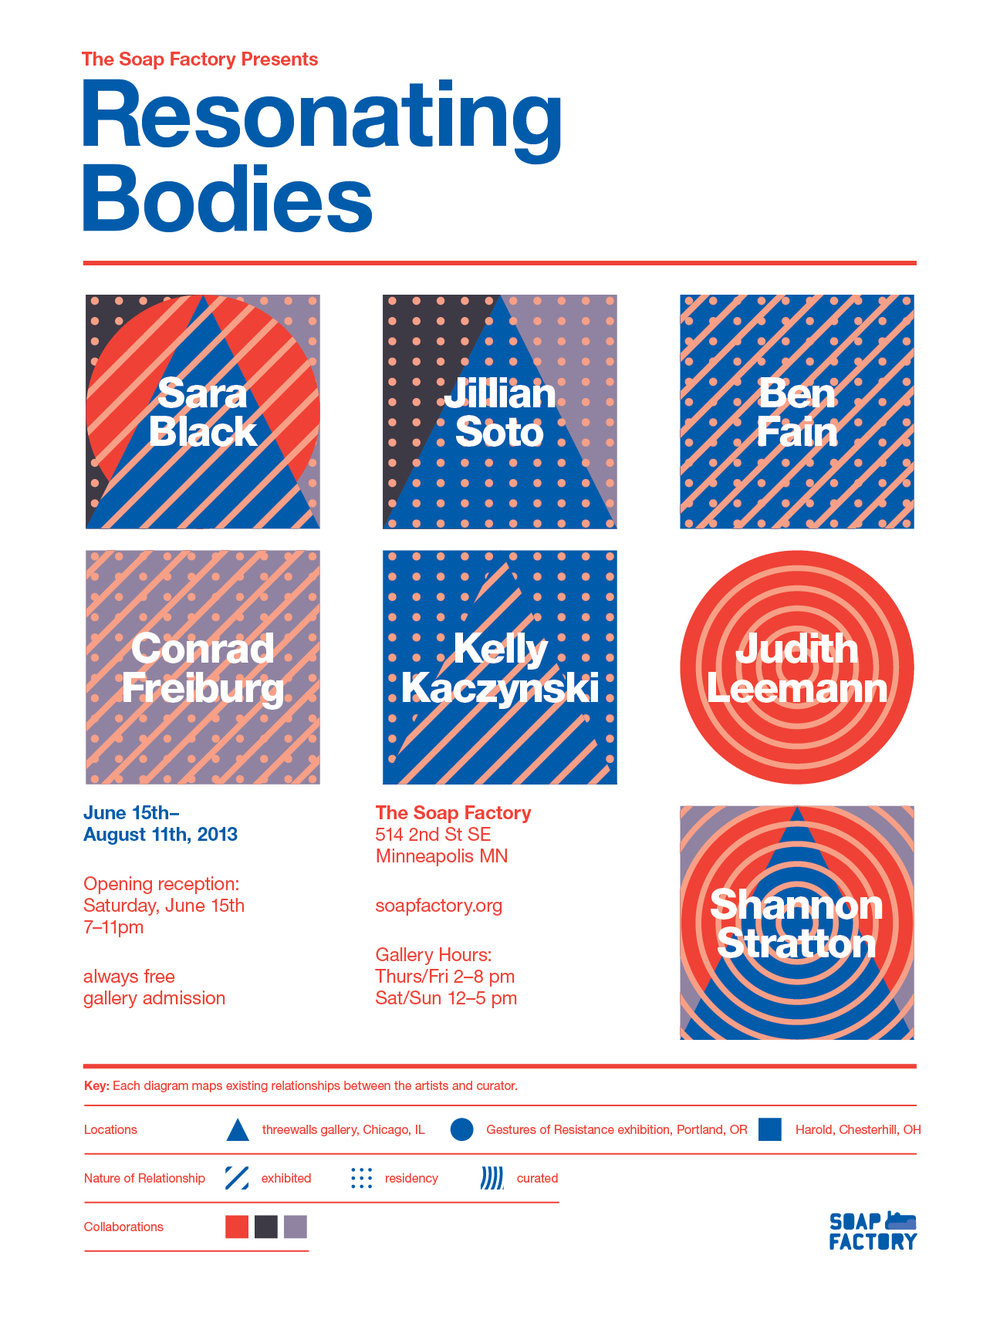 Resonating Bodies exhibition poster and graphics